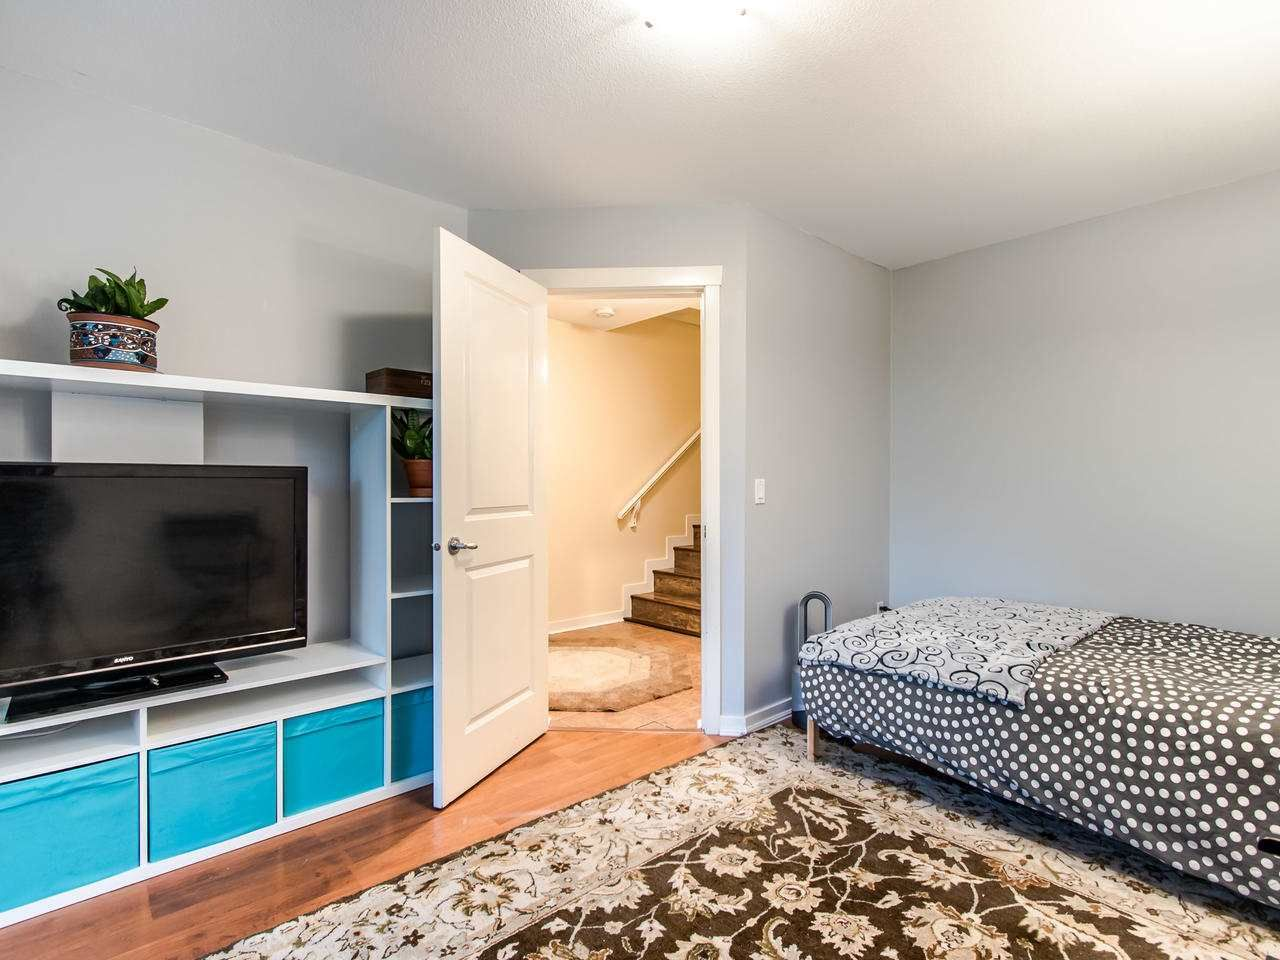 """Photo 18: Photos: 7 2200 PANORAMA Drive in Port Moody: Heritage Woods PM Townhouse for sale in """"THE QUEST"""" : MLS®# R2414883"""